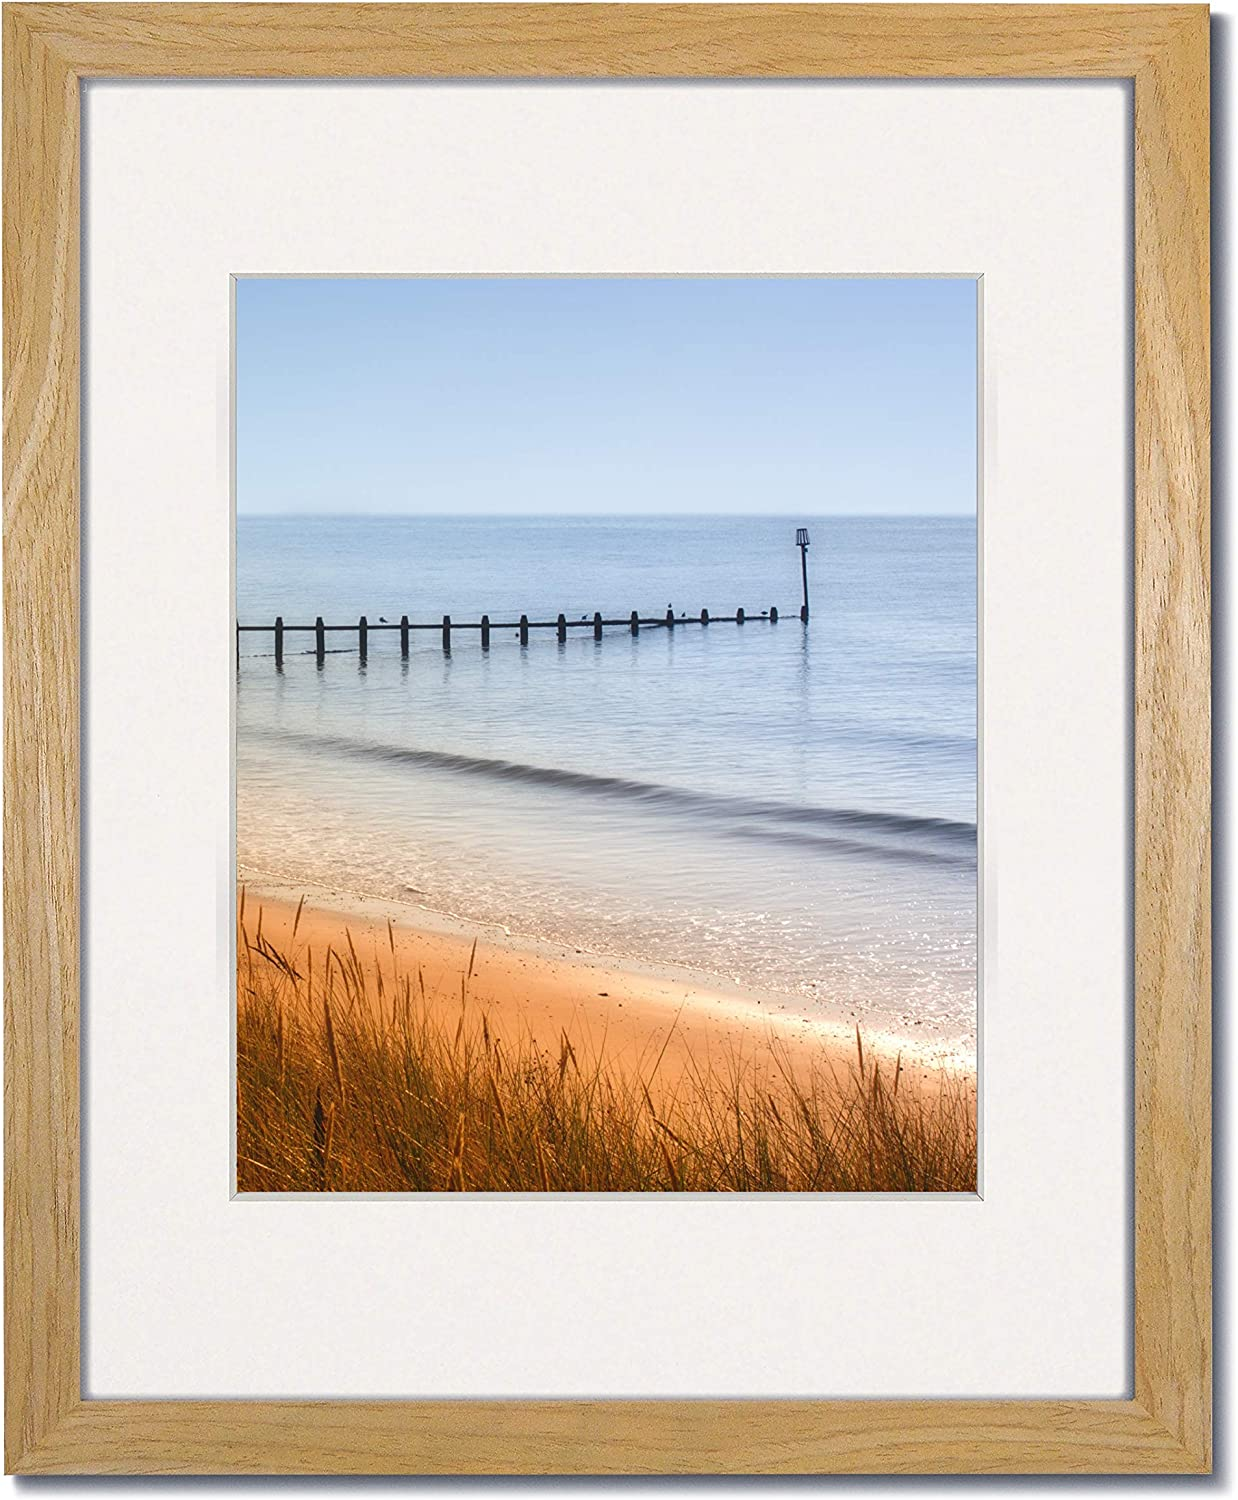 Amazon Com Coastal Wood 16x20 Natural Picture Frames With Clear Glass And Single White Mat For 12x16 1